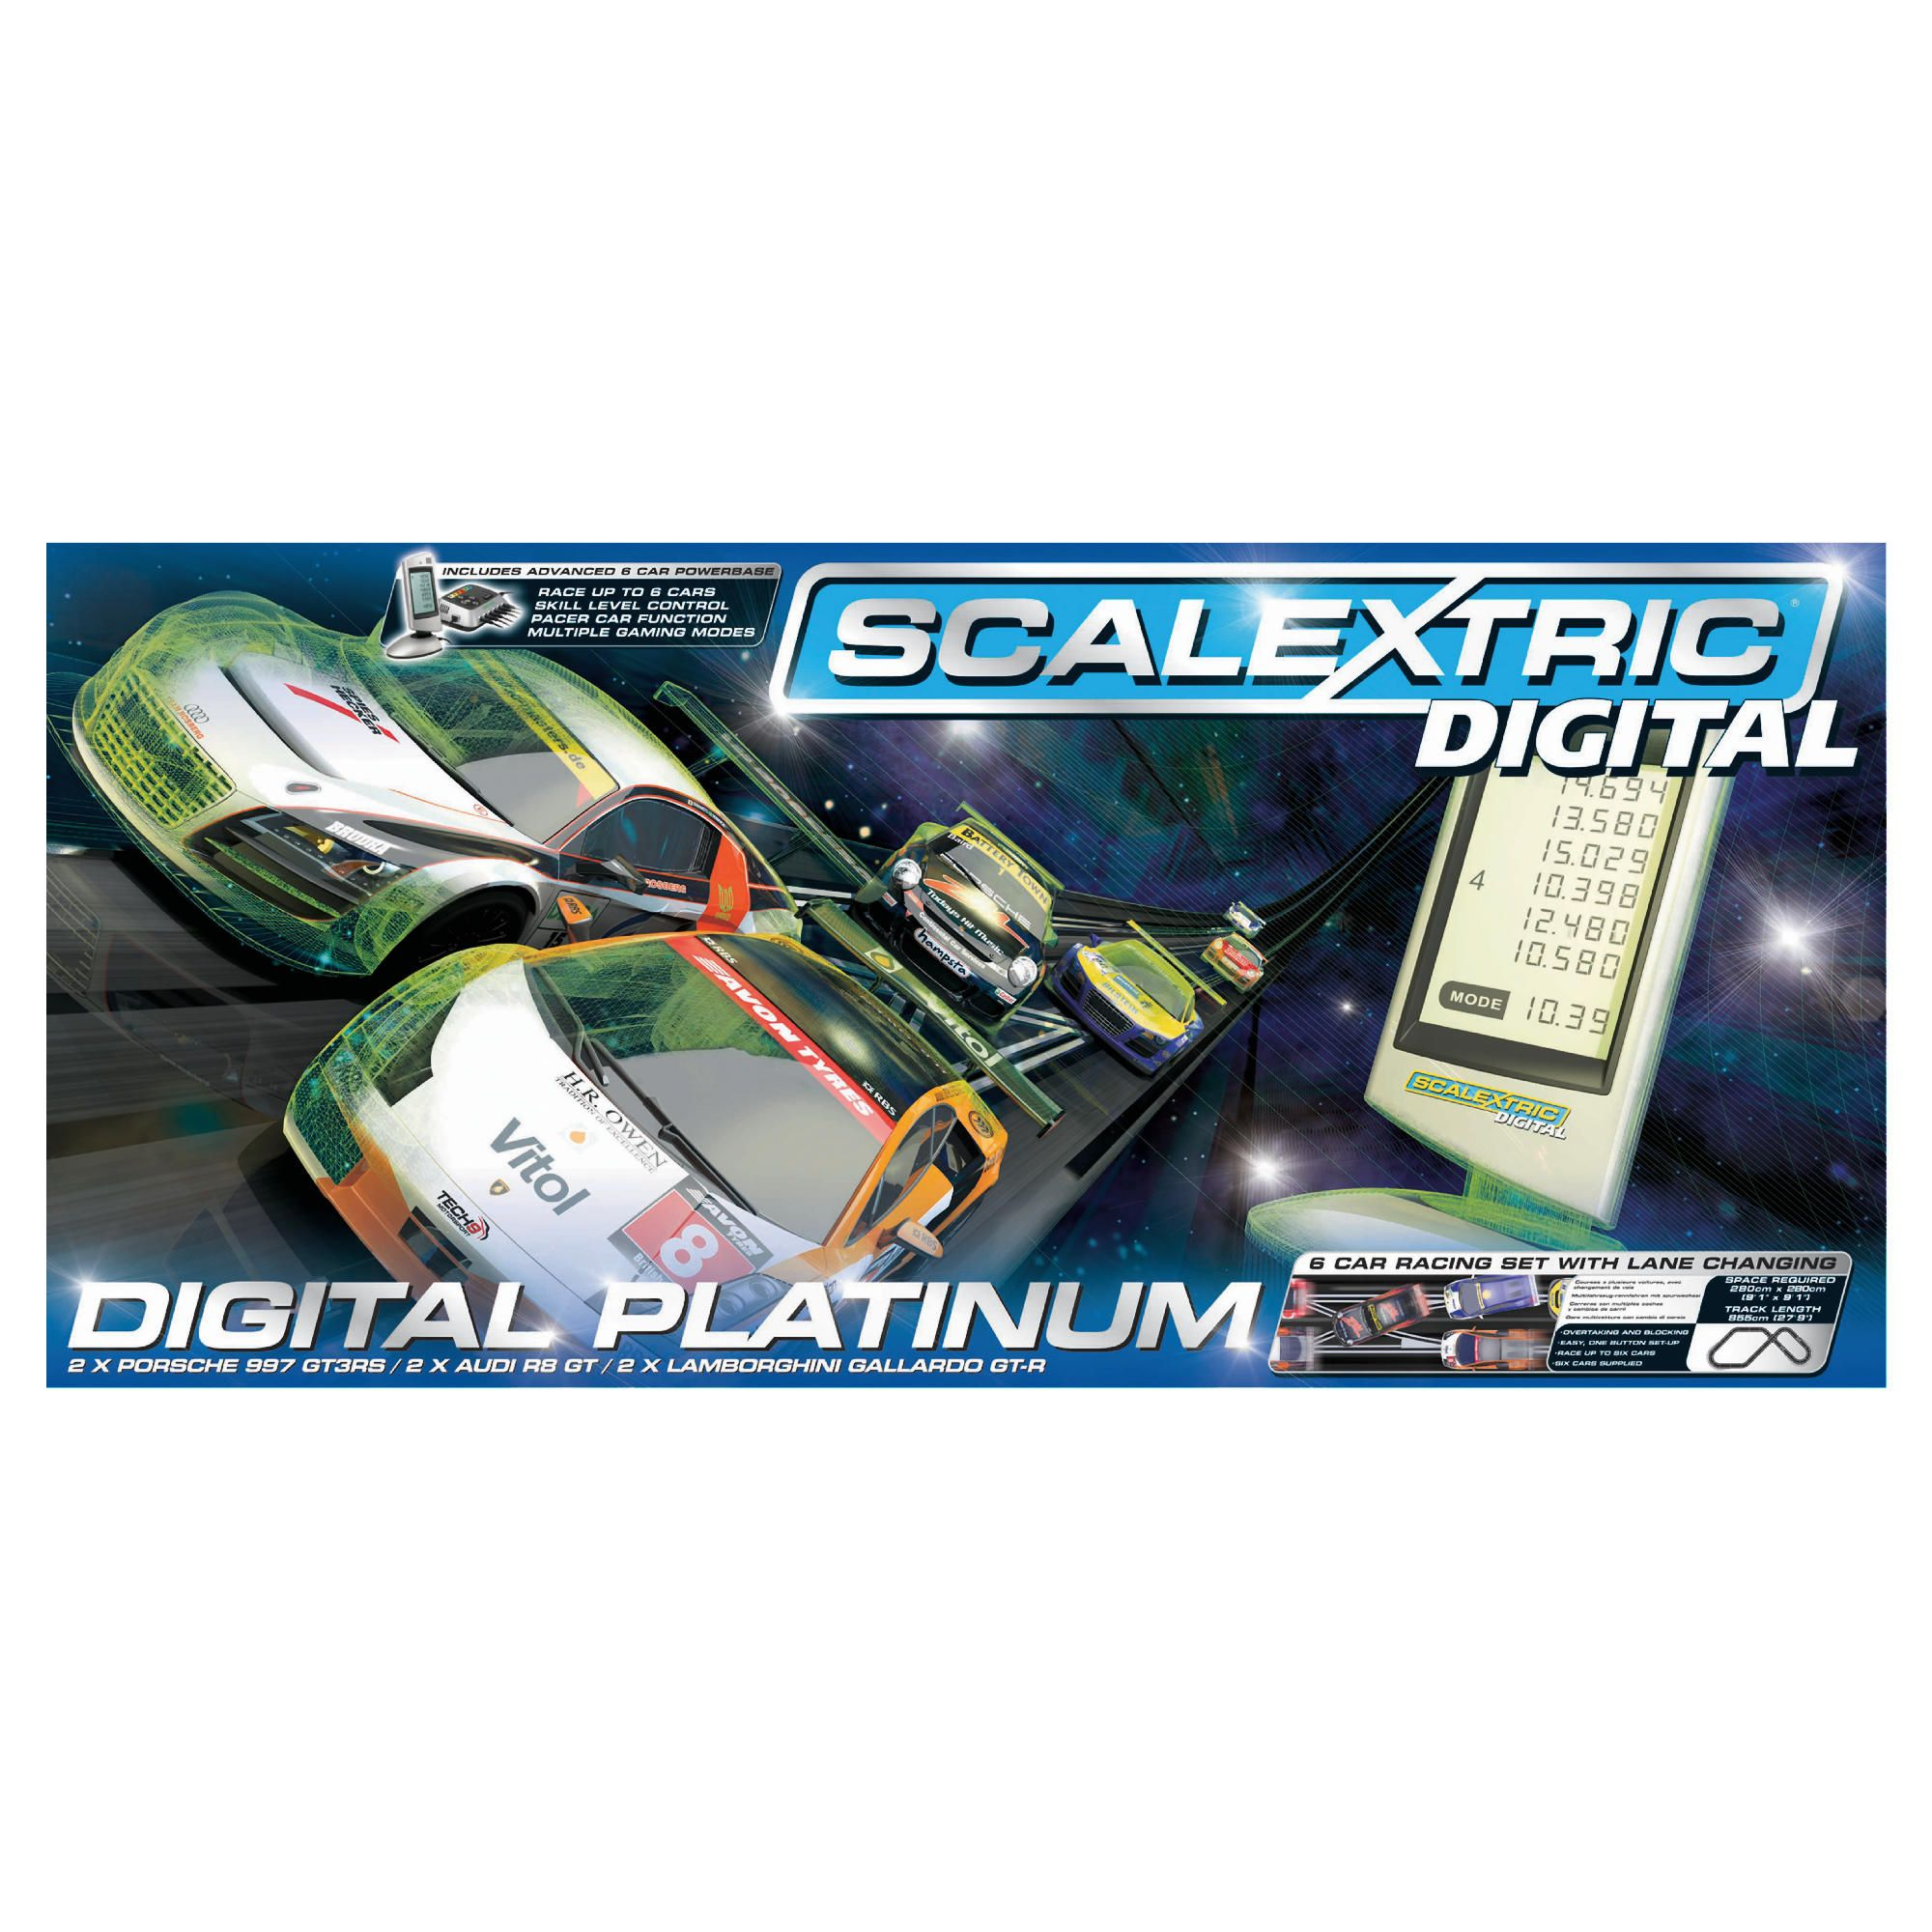 Scalextric C1276 Digital Platinum 1:32 Scale Race Set at Tesco Direct